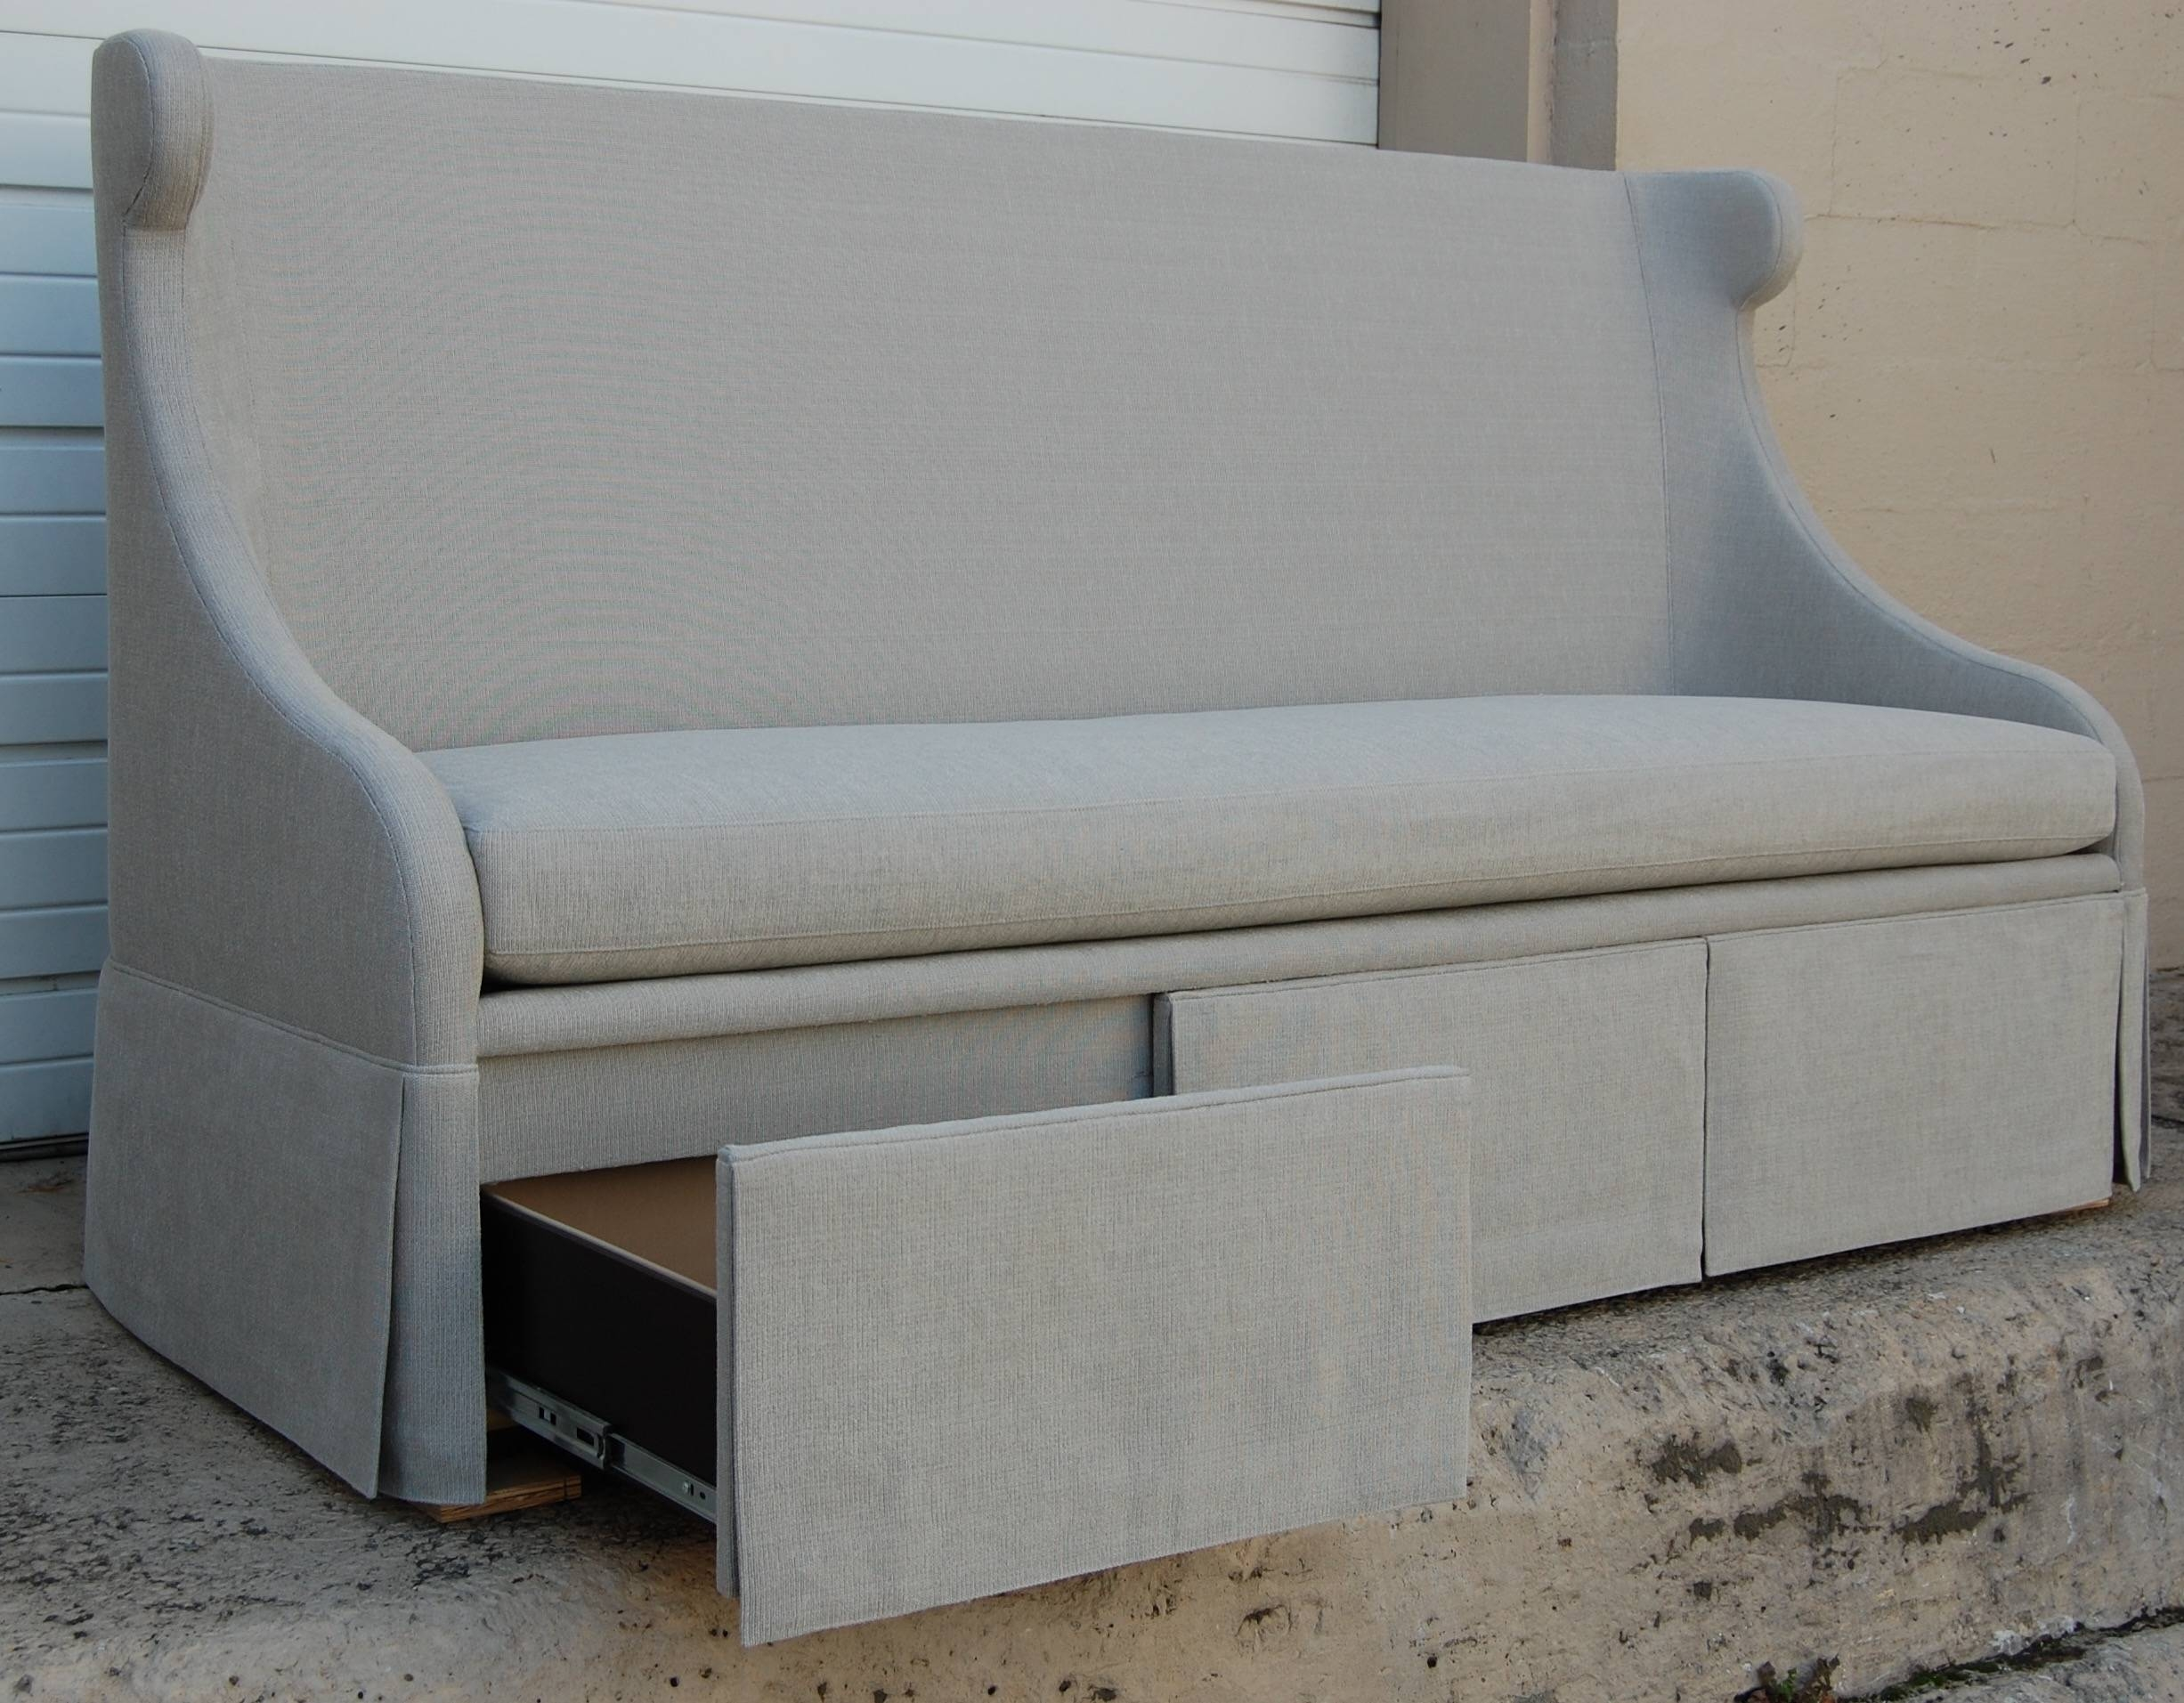 Banquette Furniture Ideas – Banquette Design throughout Banquette Sofas (Image 4 of 15)